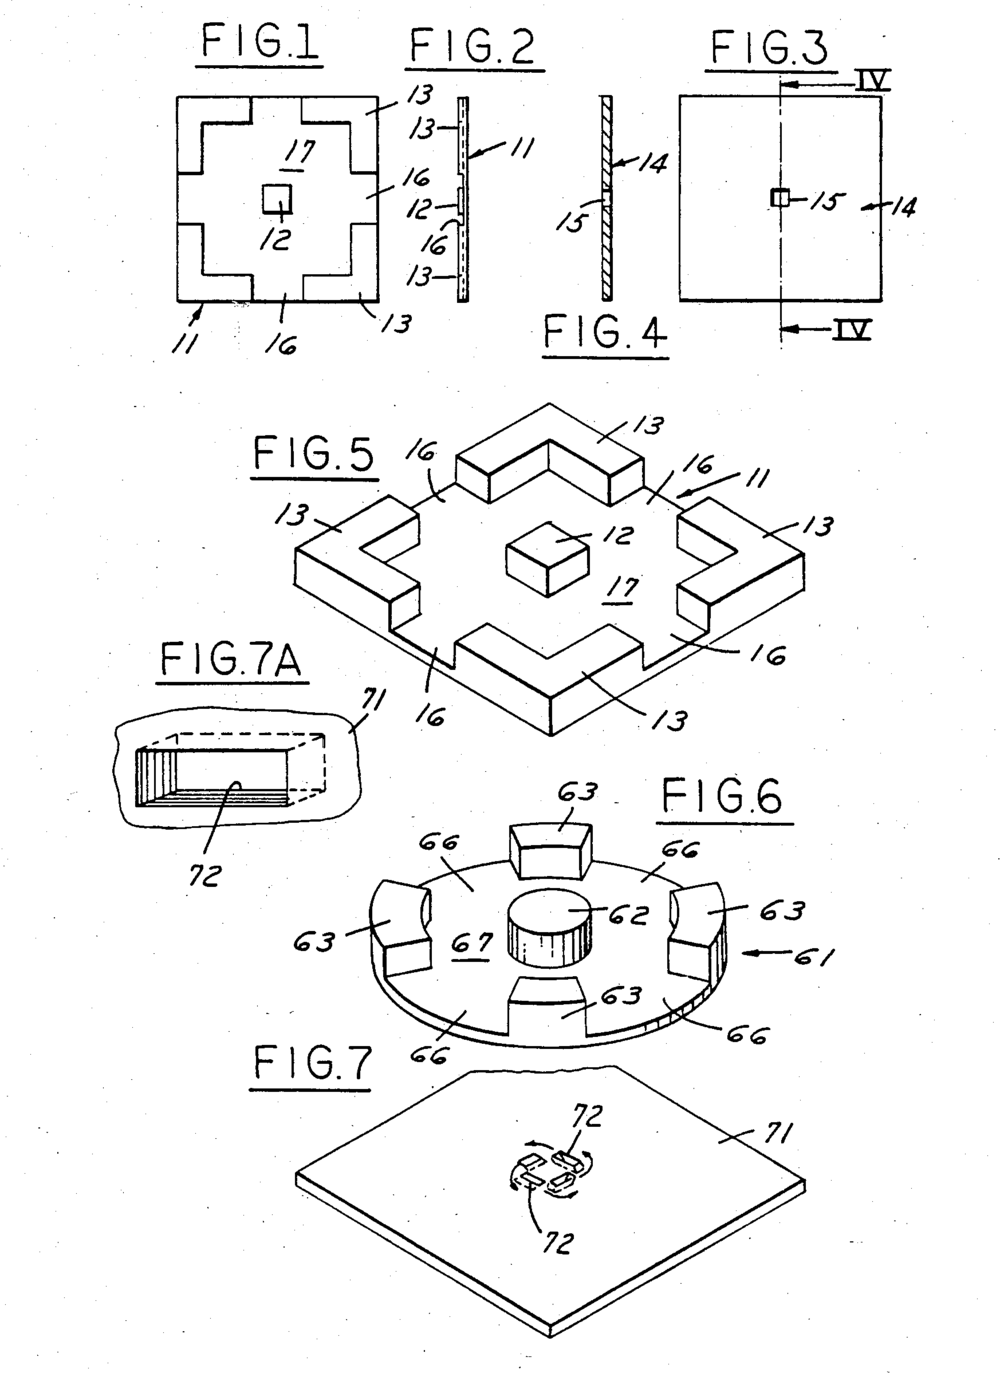 """Method for Fabricating a Silicon Valve""   Patent number 4,628,576    Filing date: Sep 9,1985, Issue date: Dec 16, 1986 Inventors Joseph M. Giachino, James W. Kress"